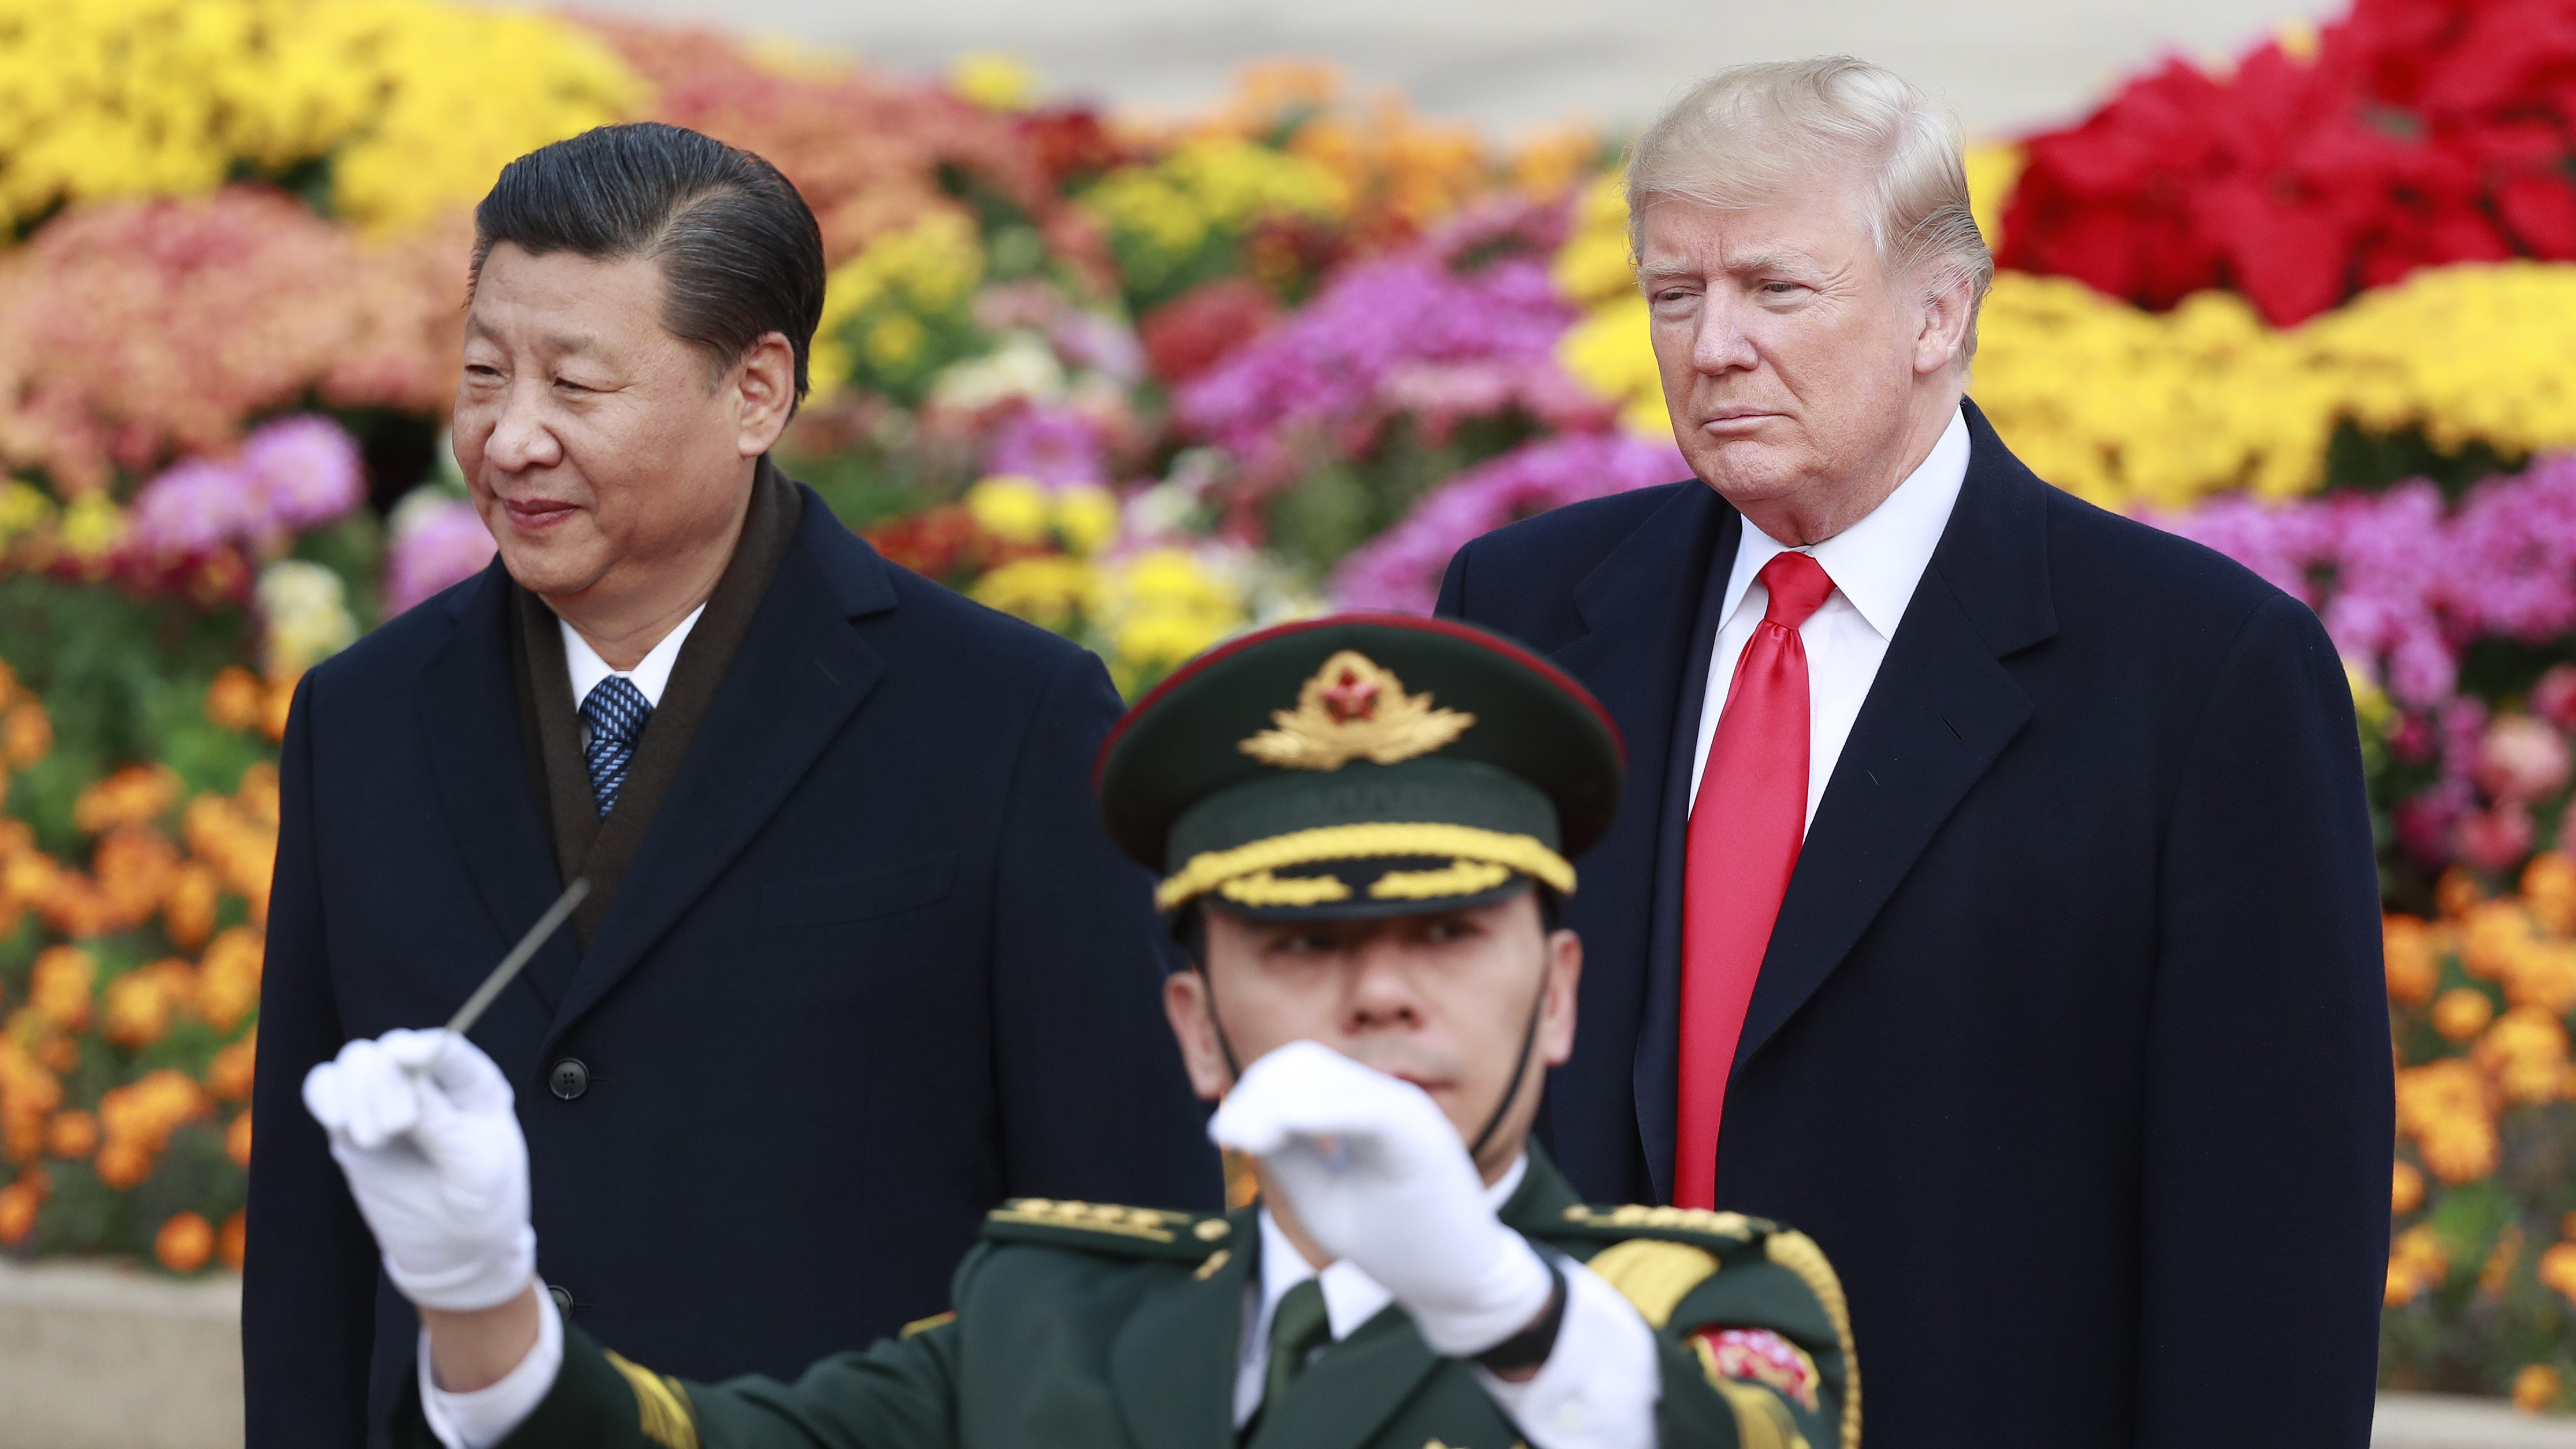 US President Donald J. Trump (R) and his Chinese counterpart Xi Jinping (L) watch a military band perform during a welcome ceremony in Beijing, China, 09 November 2017. US President Donald J. Trump is in China for a state visit from 08 to 10 November as part of his 12-day tour of Asia.